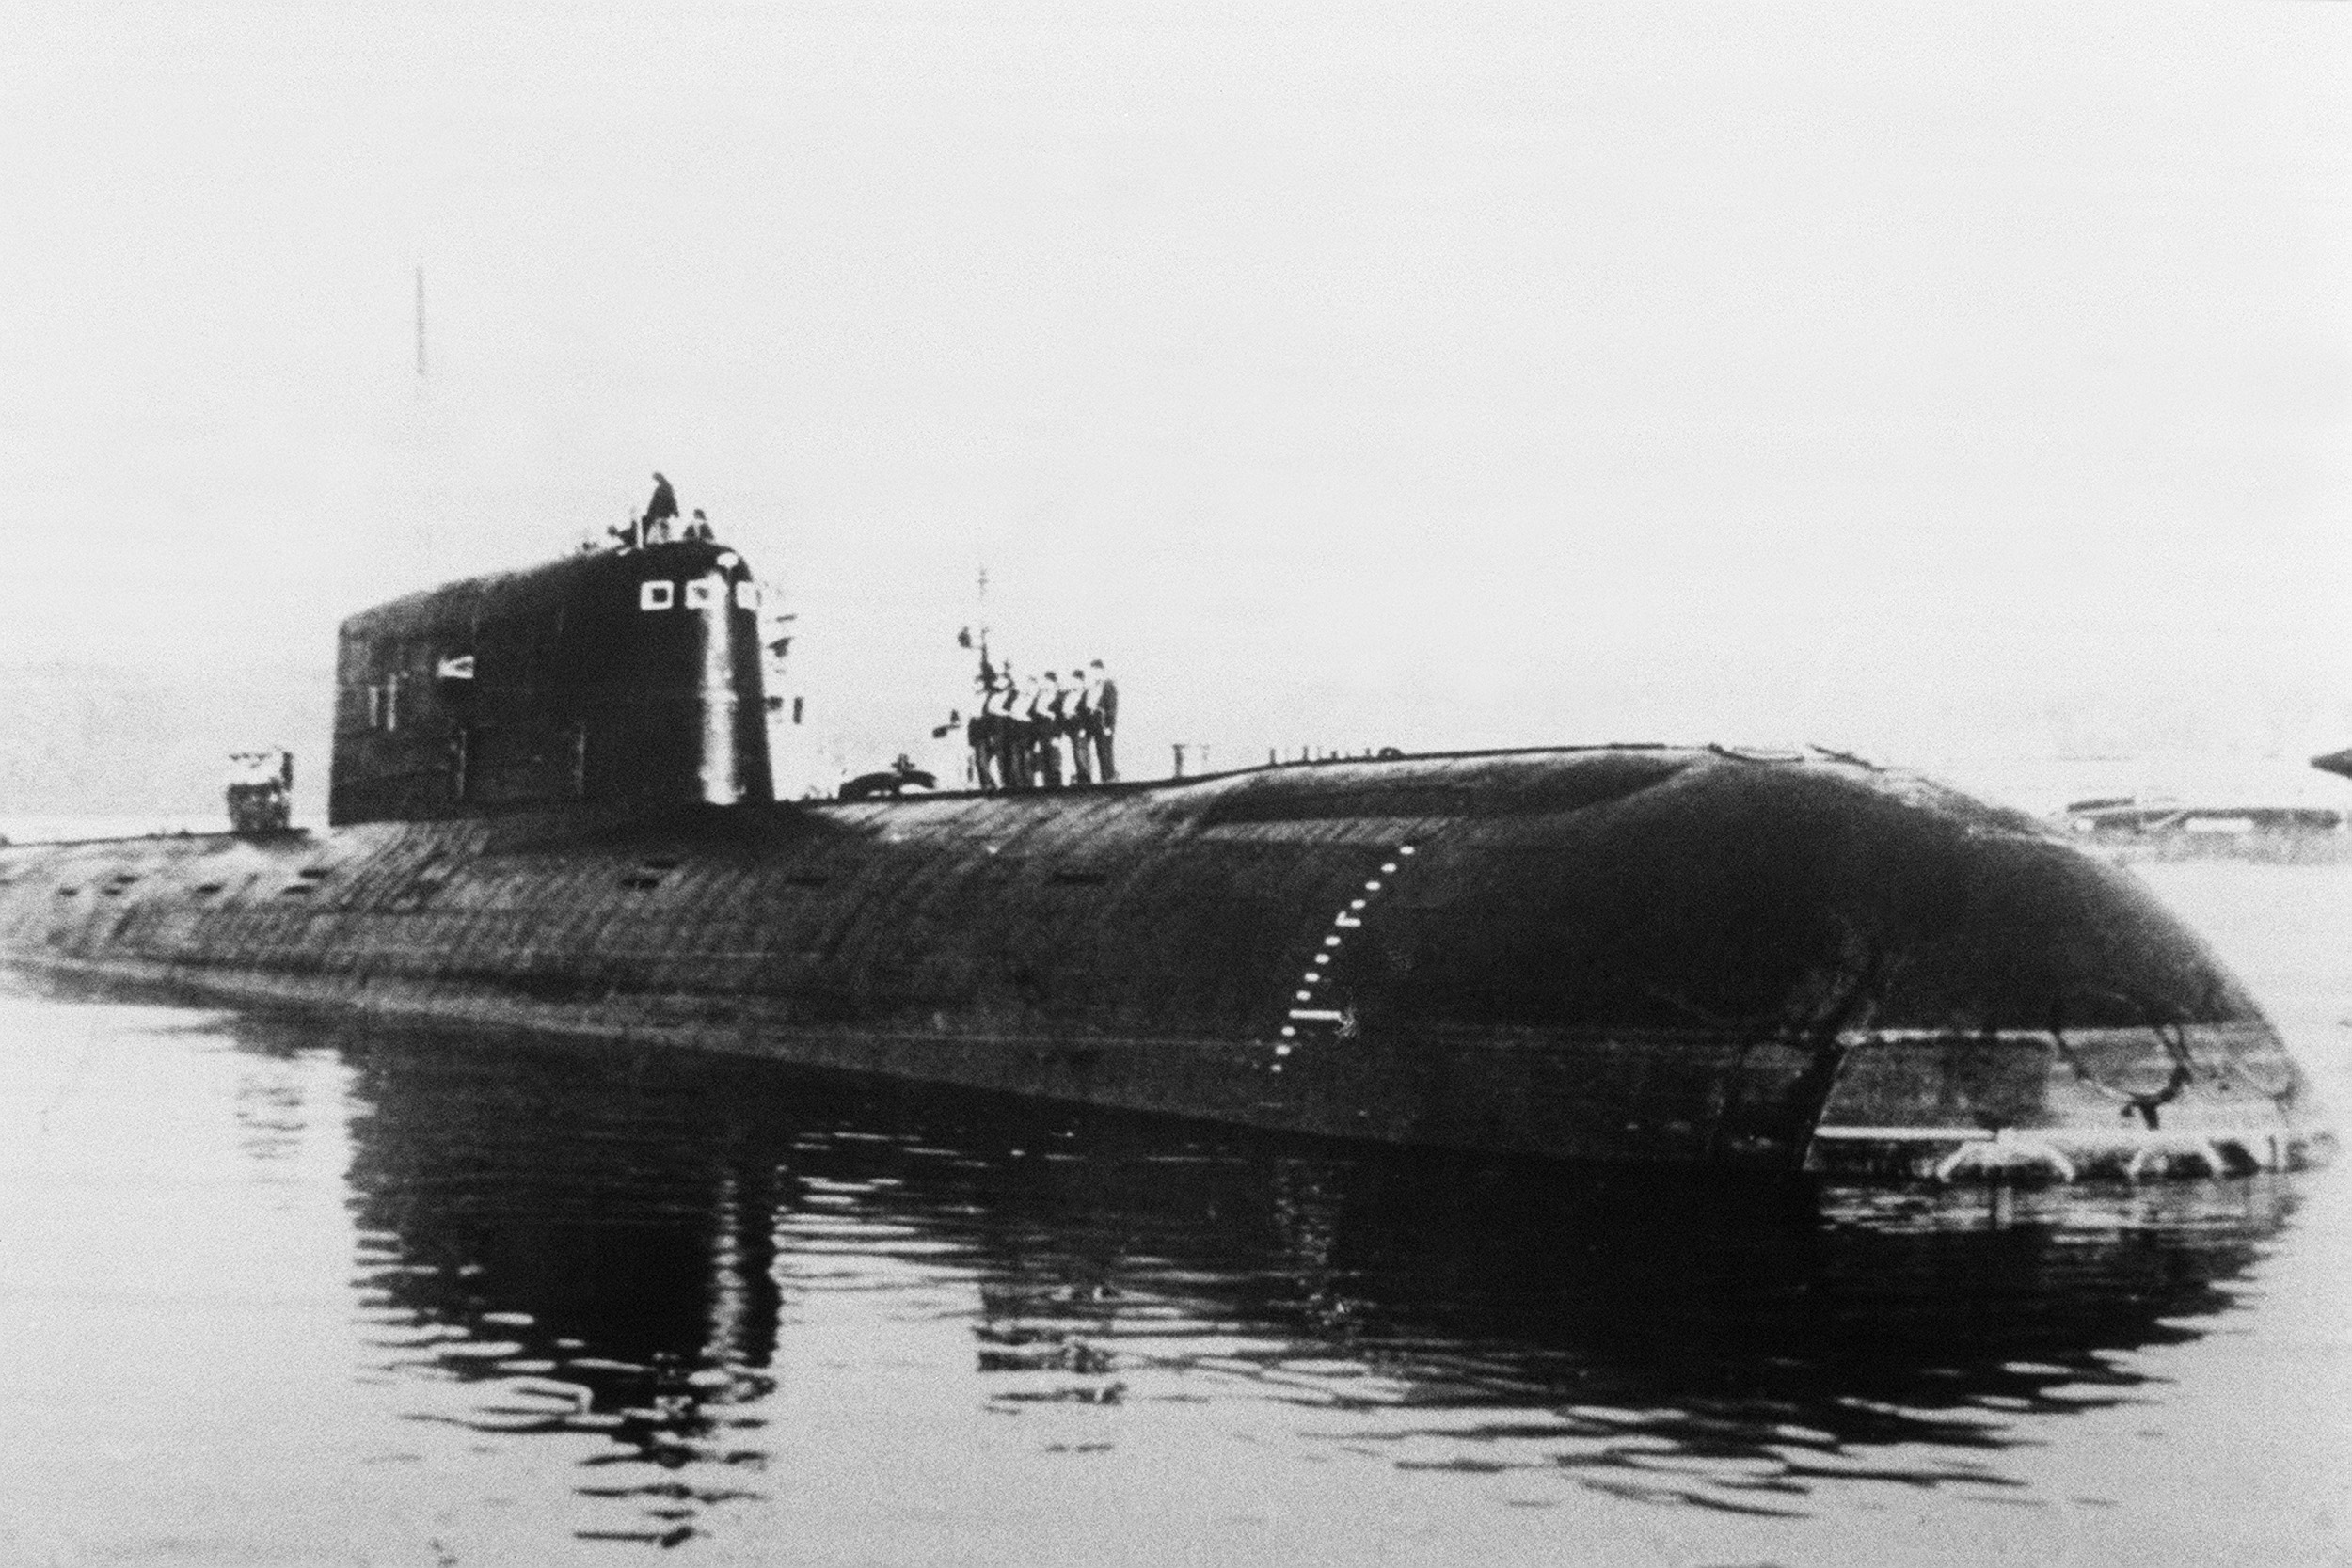 Radiation Levels of Sunken Russian Nuclear Submarine 100,000